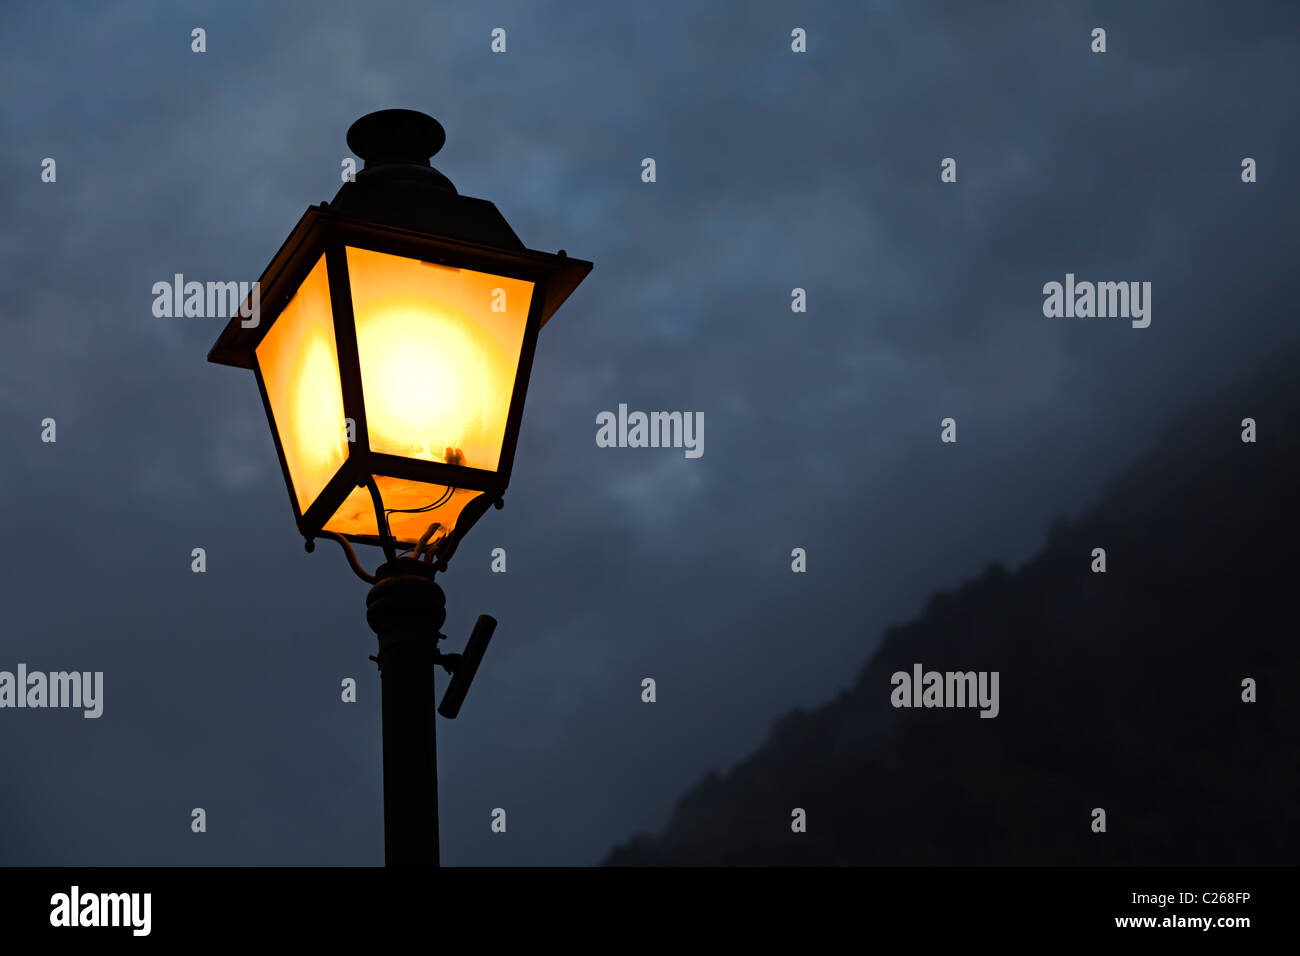 Warm glow of street light on a dark night - Stock Image